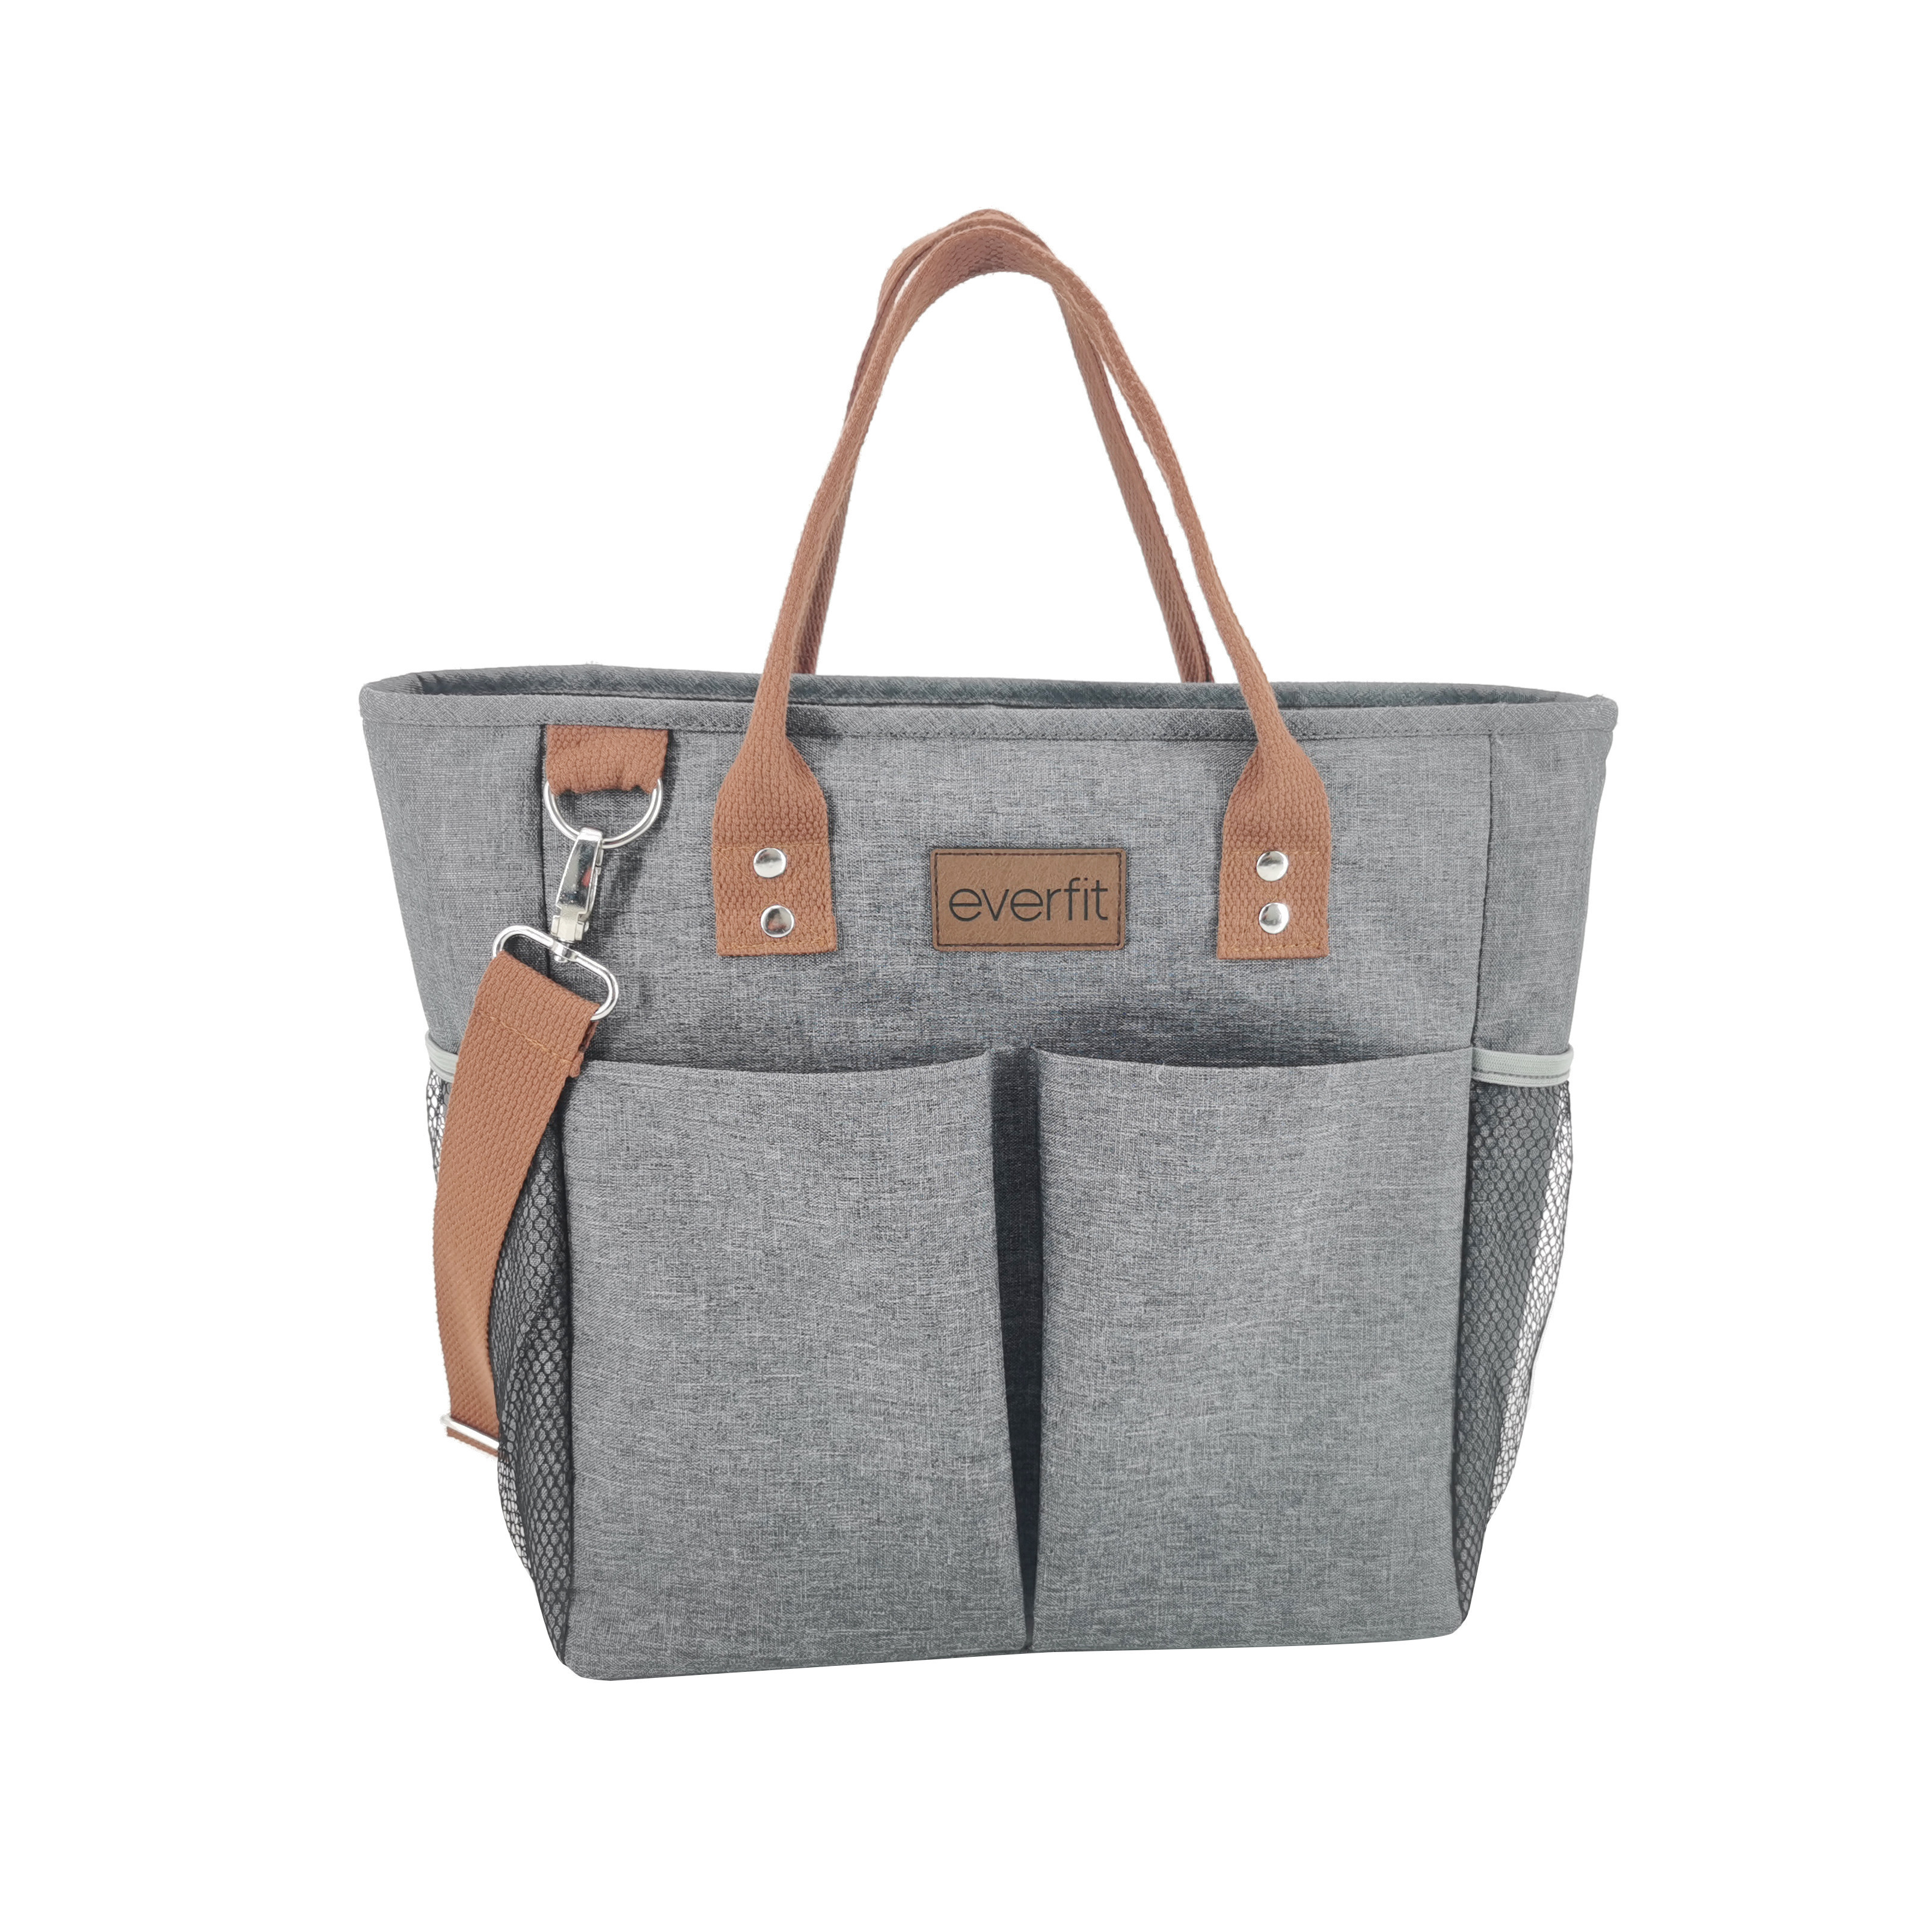 Large Insulated Lunch Tote Bag with Pockets and Shoulder Strap, 20-Can Capacity Ideal for 40z Bottles, For Women Men Work Colleg